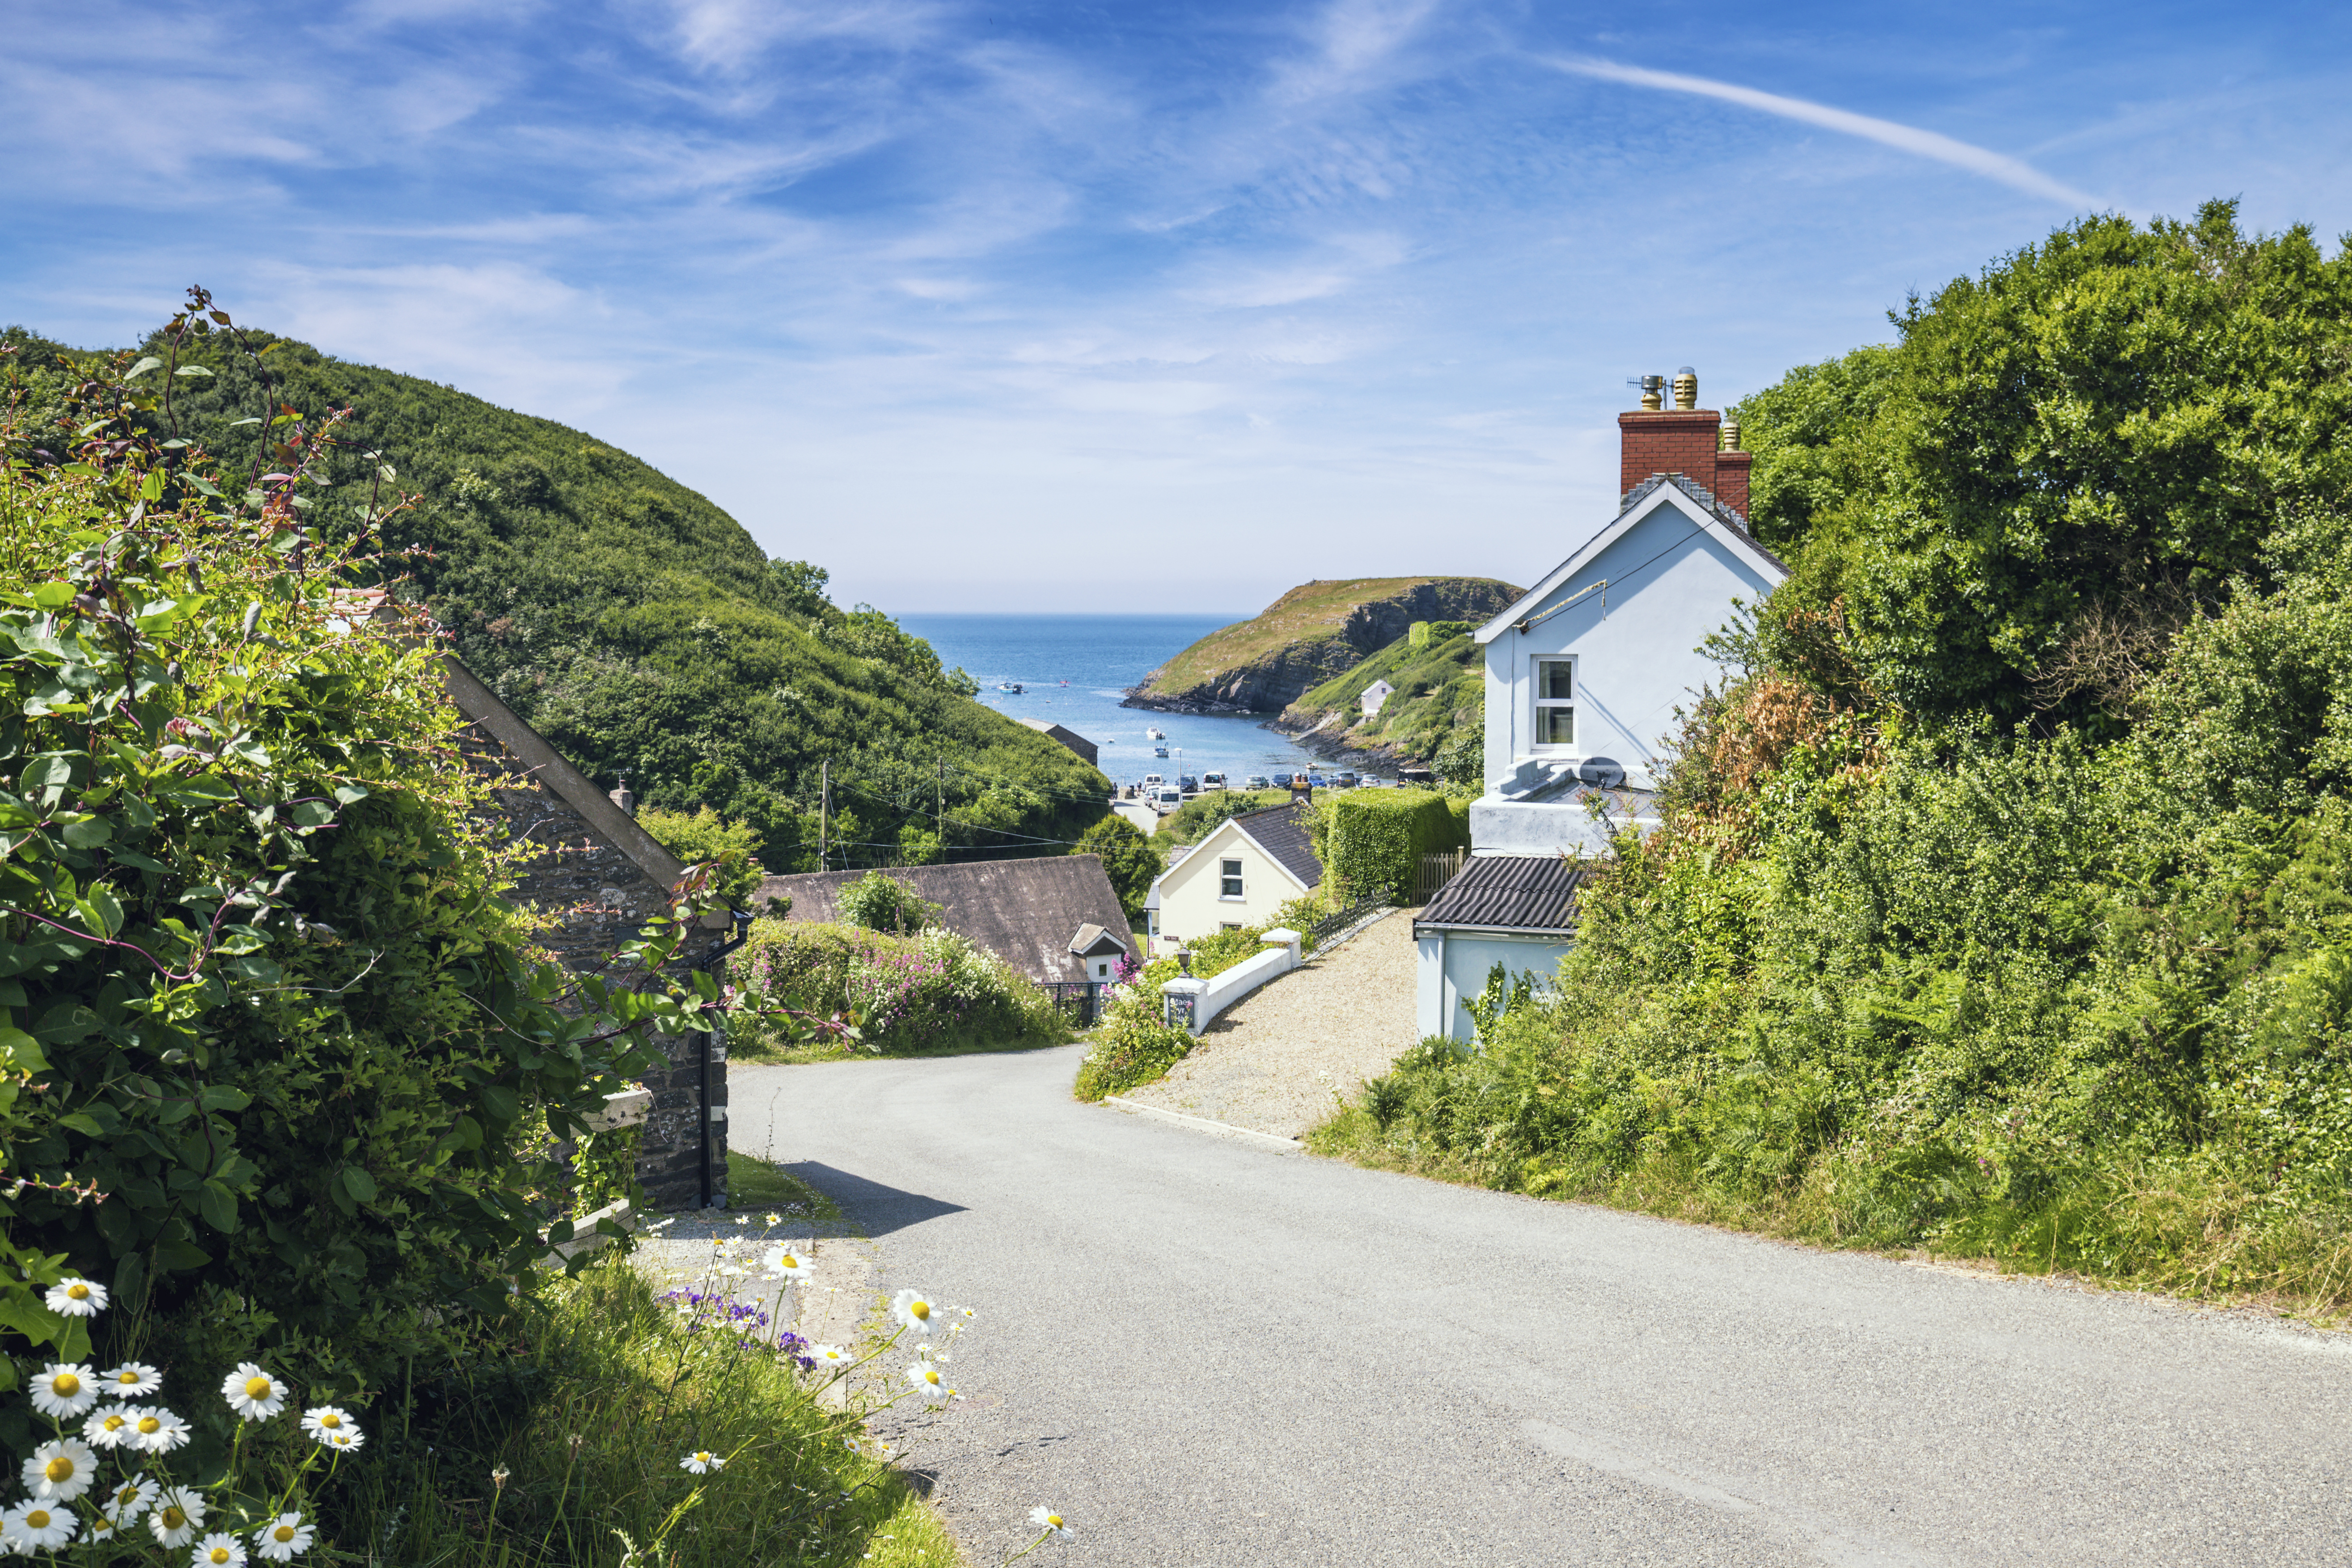 Late availability holiday cottages in Wales